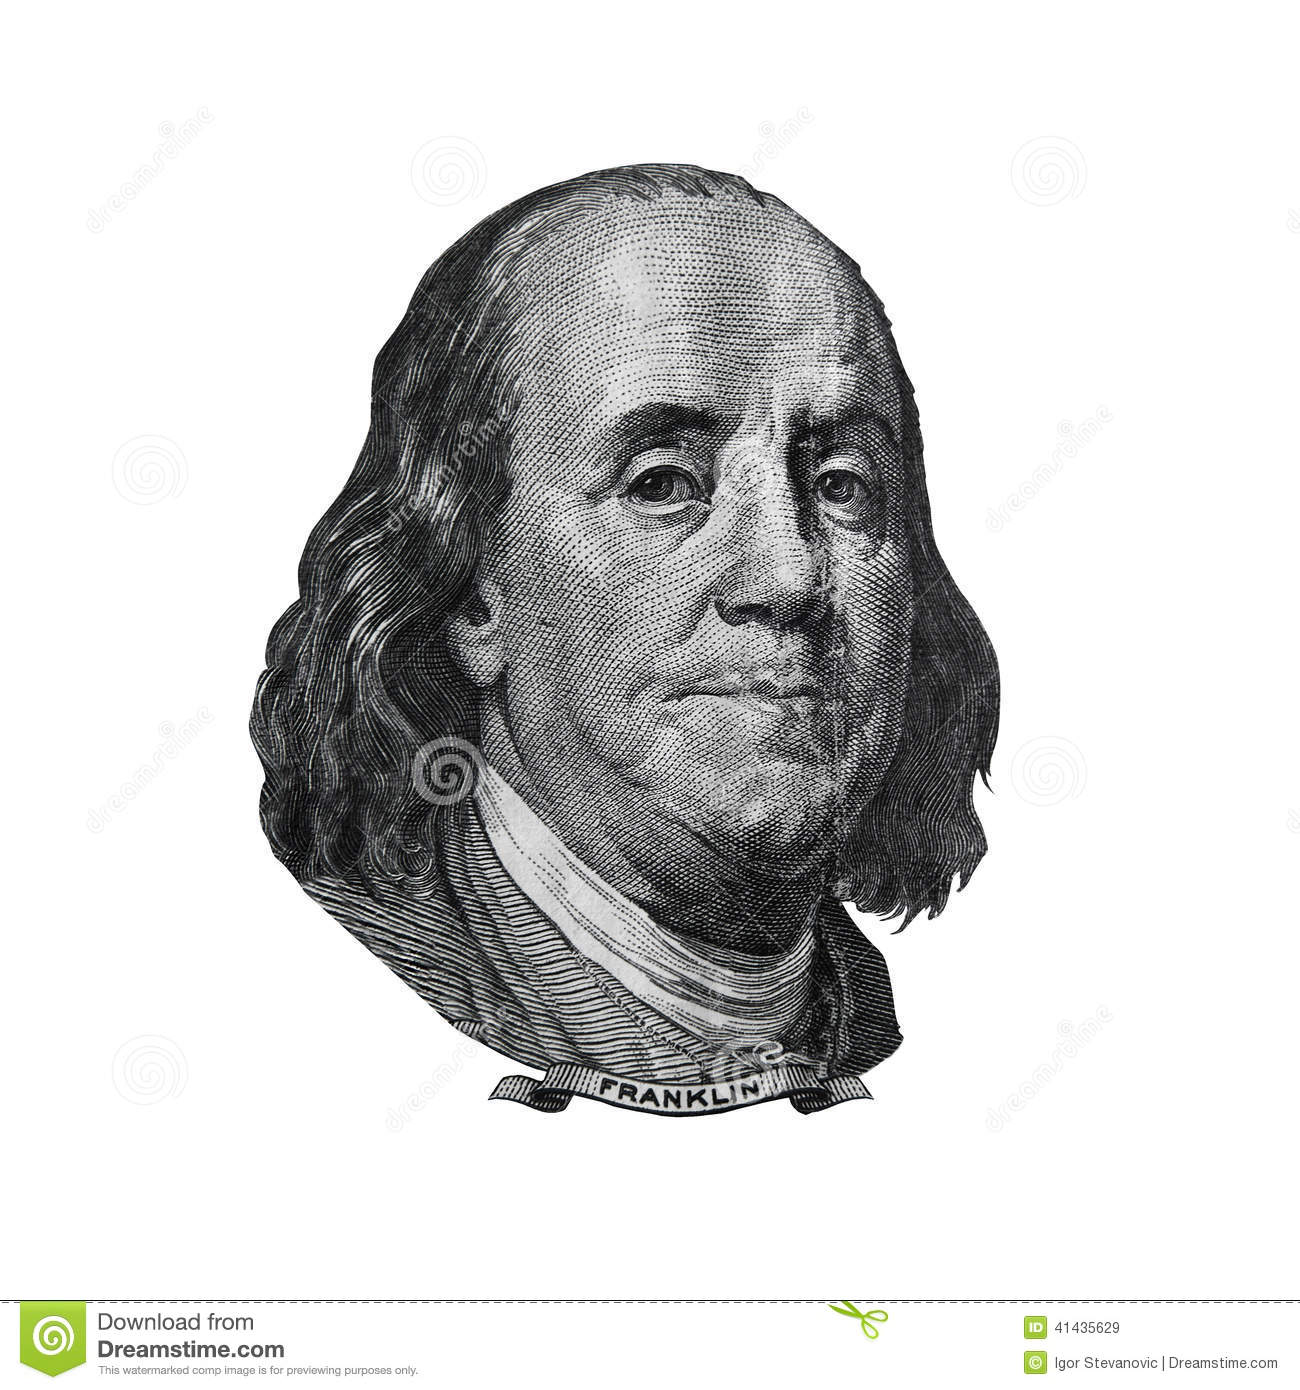 usa map states with Stock Photo Benjamin Franklin Portrait Found Hundred Dollars Bill Cut Out Usa American Statesman Inventor Diplomat Image41435629 on Macedonia also Chechnya as well Lithuani besides Tajikistan additionally Usda Zonen.